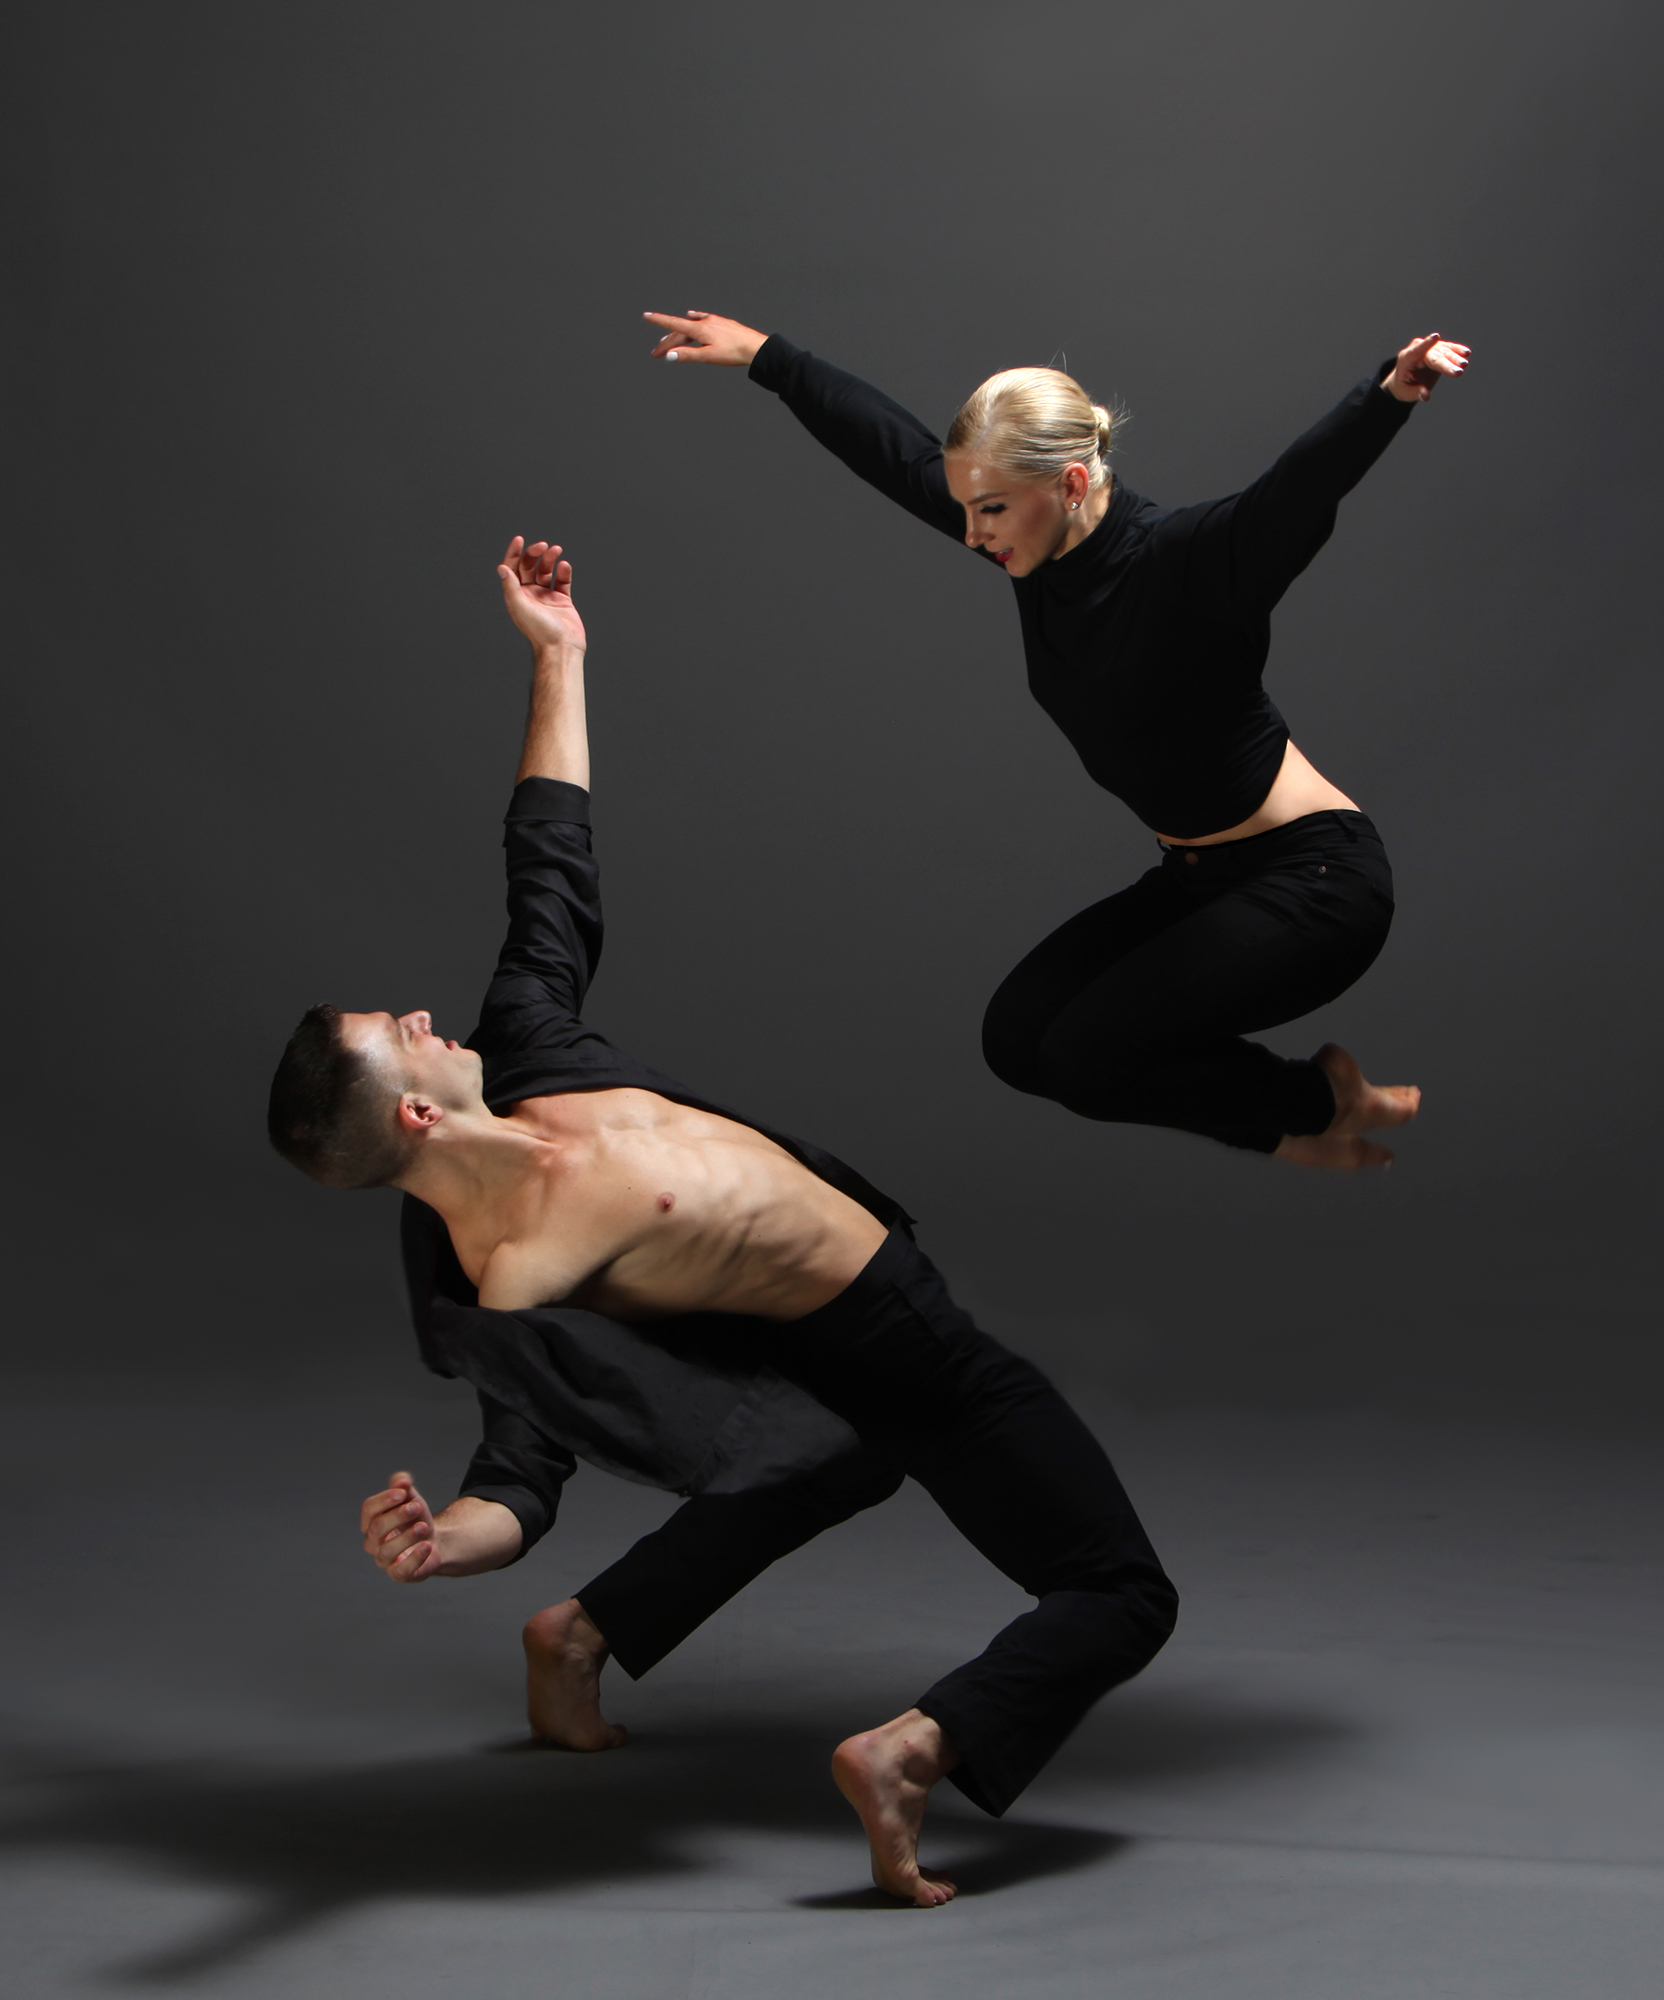 Jacob Frazier and Katie Rafferty Giordano Dance Chicago (Gorman Cook Photography)